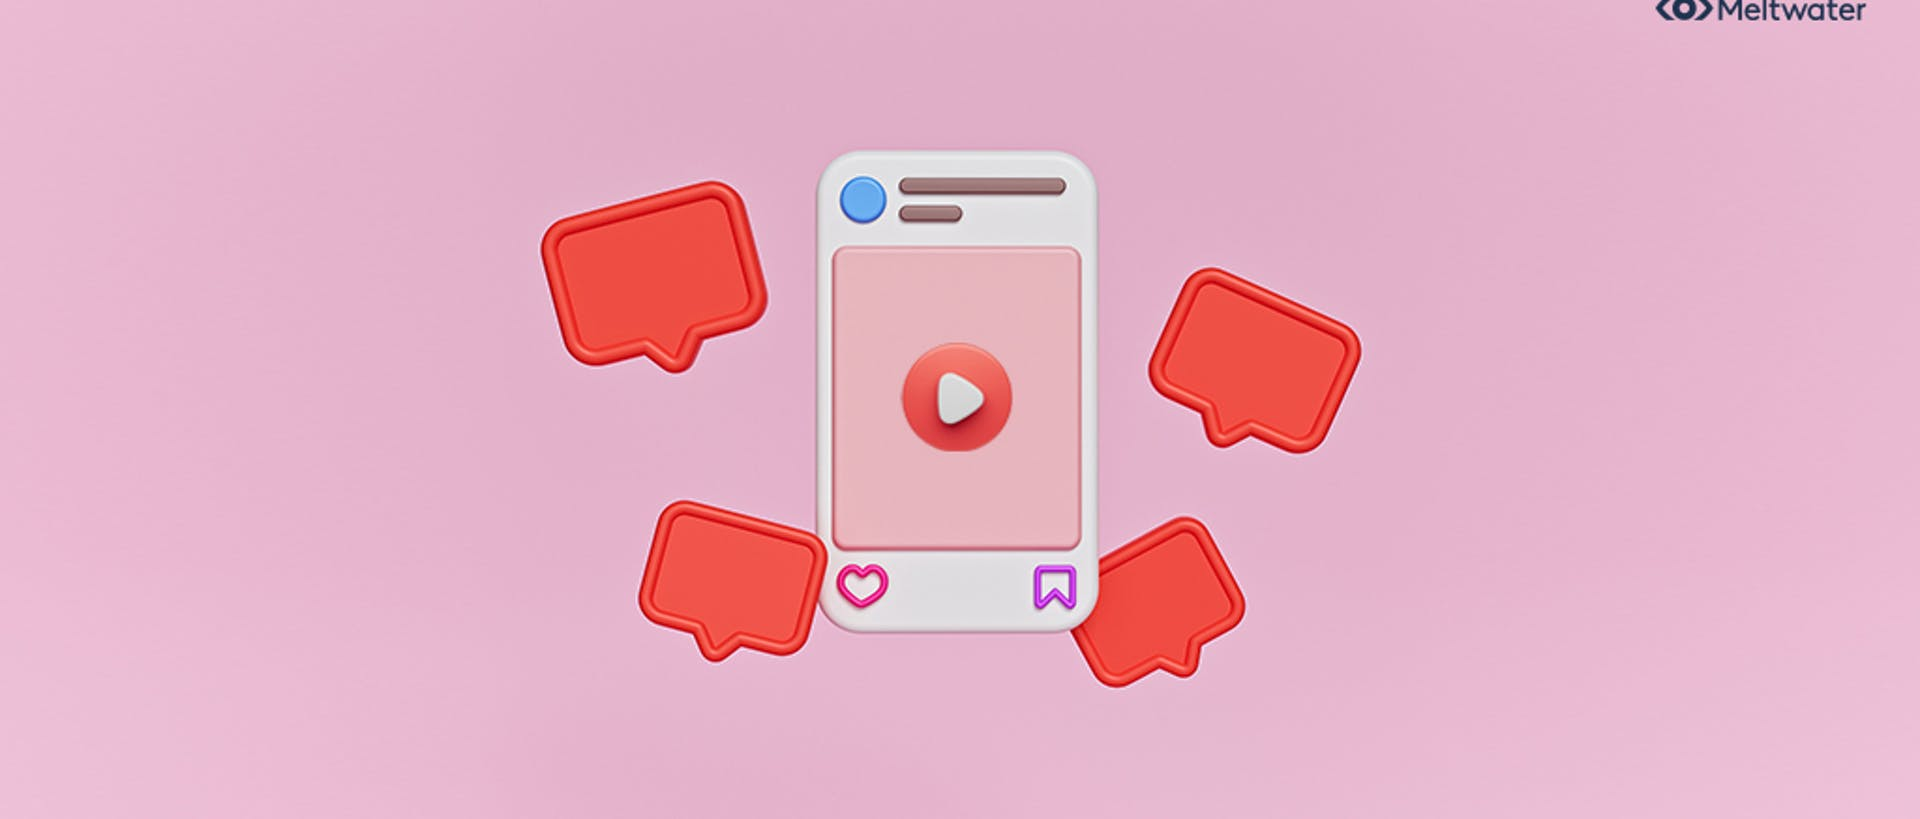 An illustrated image of an IGTV post with a video button in the center and icons of the Instagram heart reaction floating around the post.